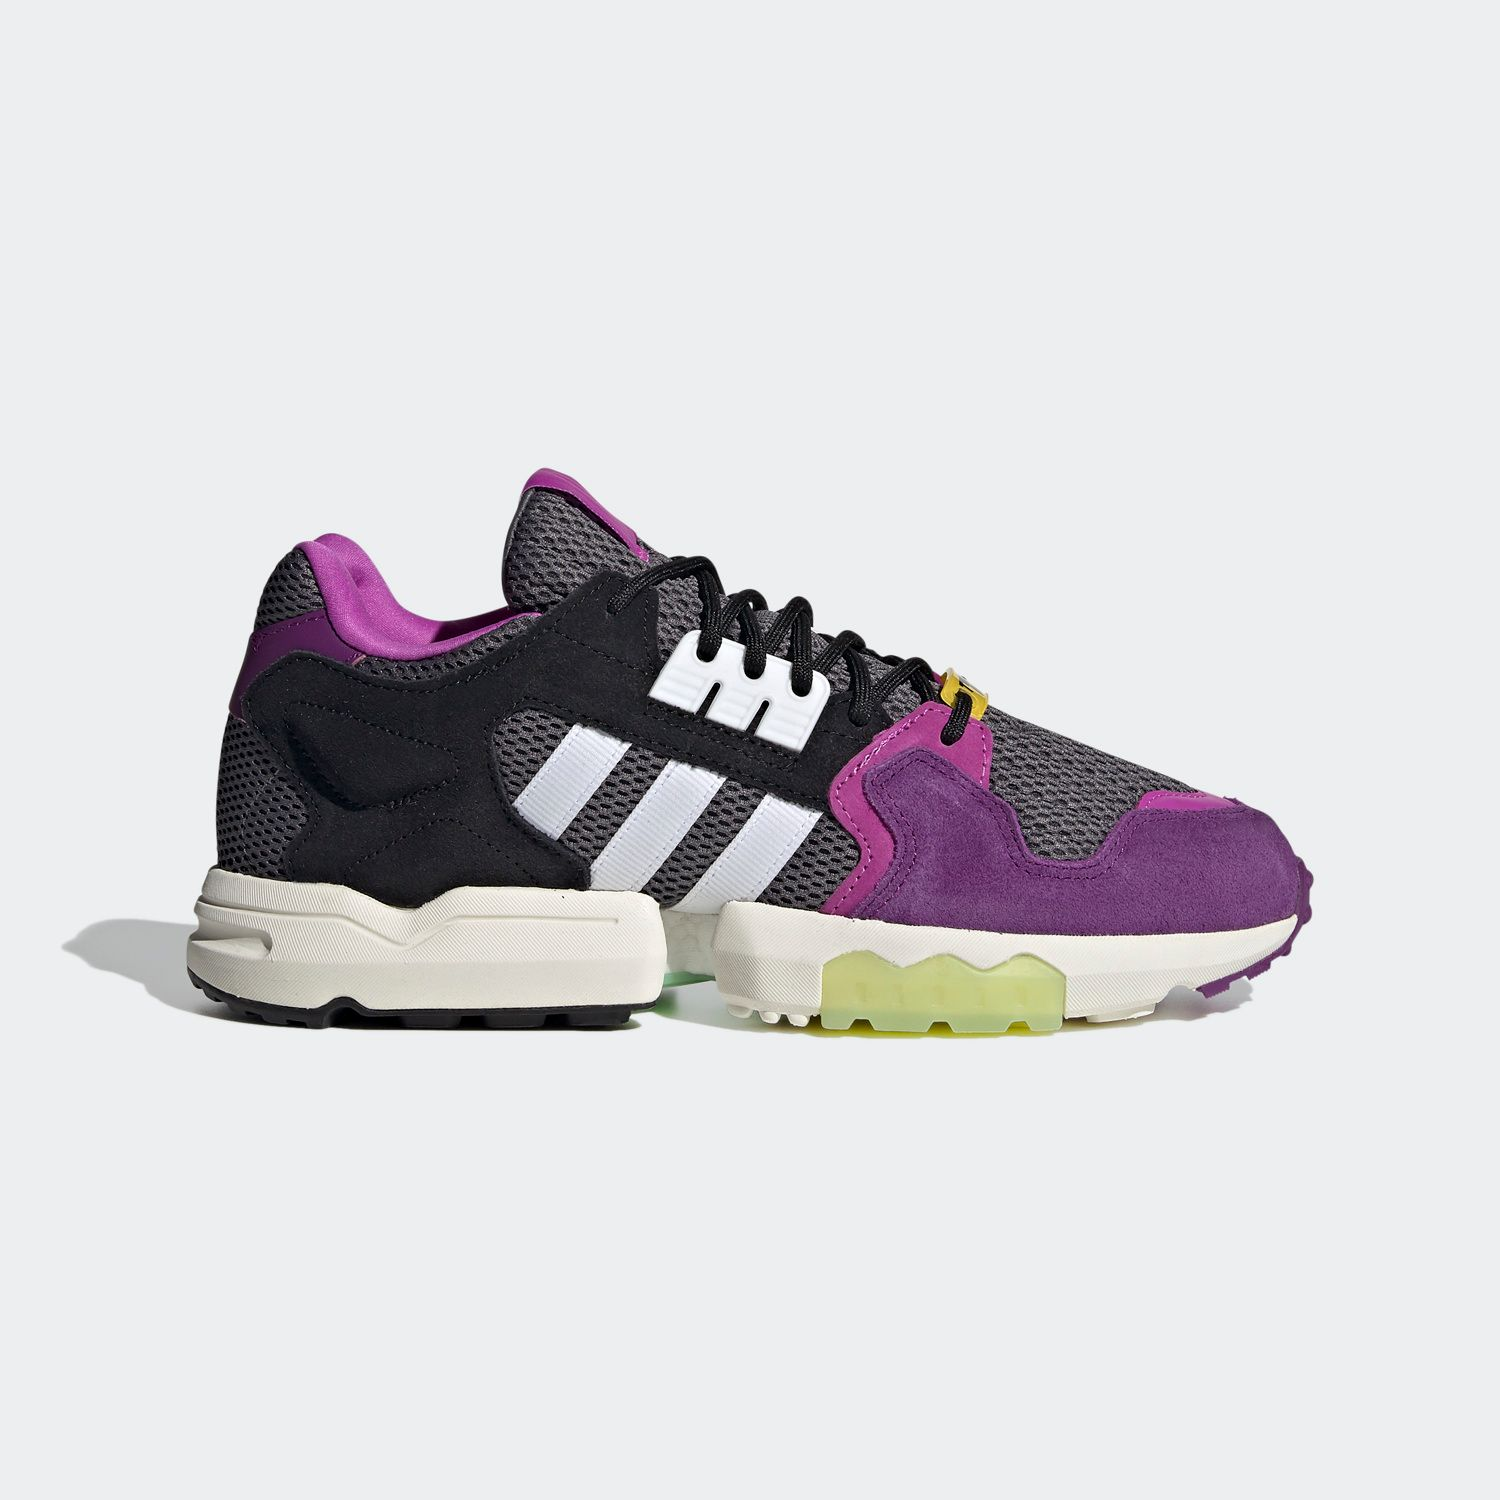 Ninja ZX Torsion Glory Purple [1]